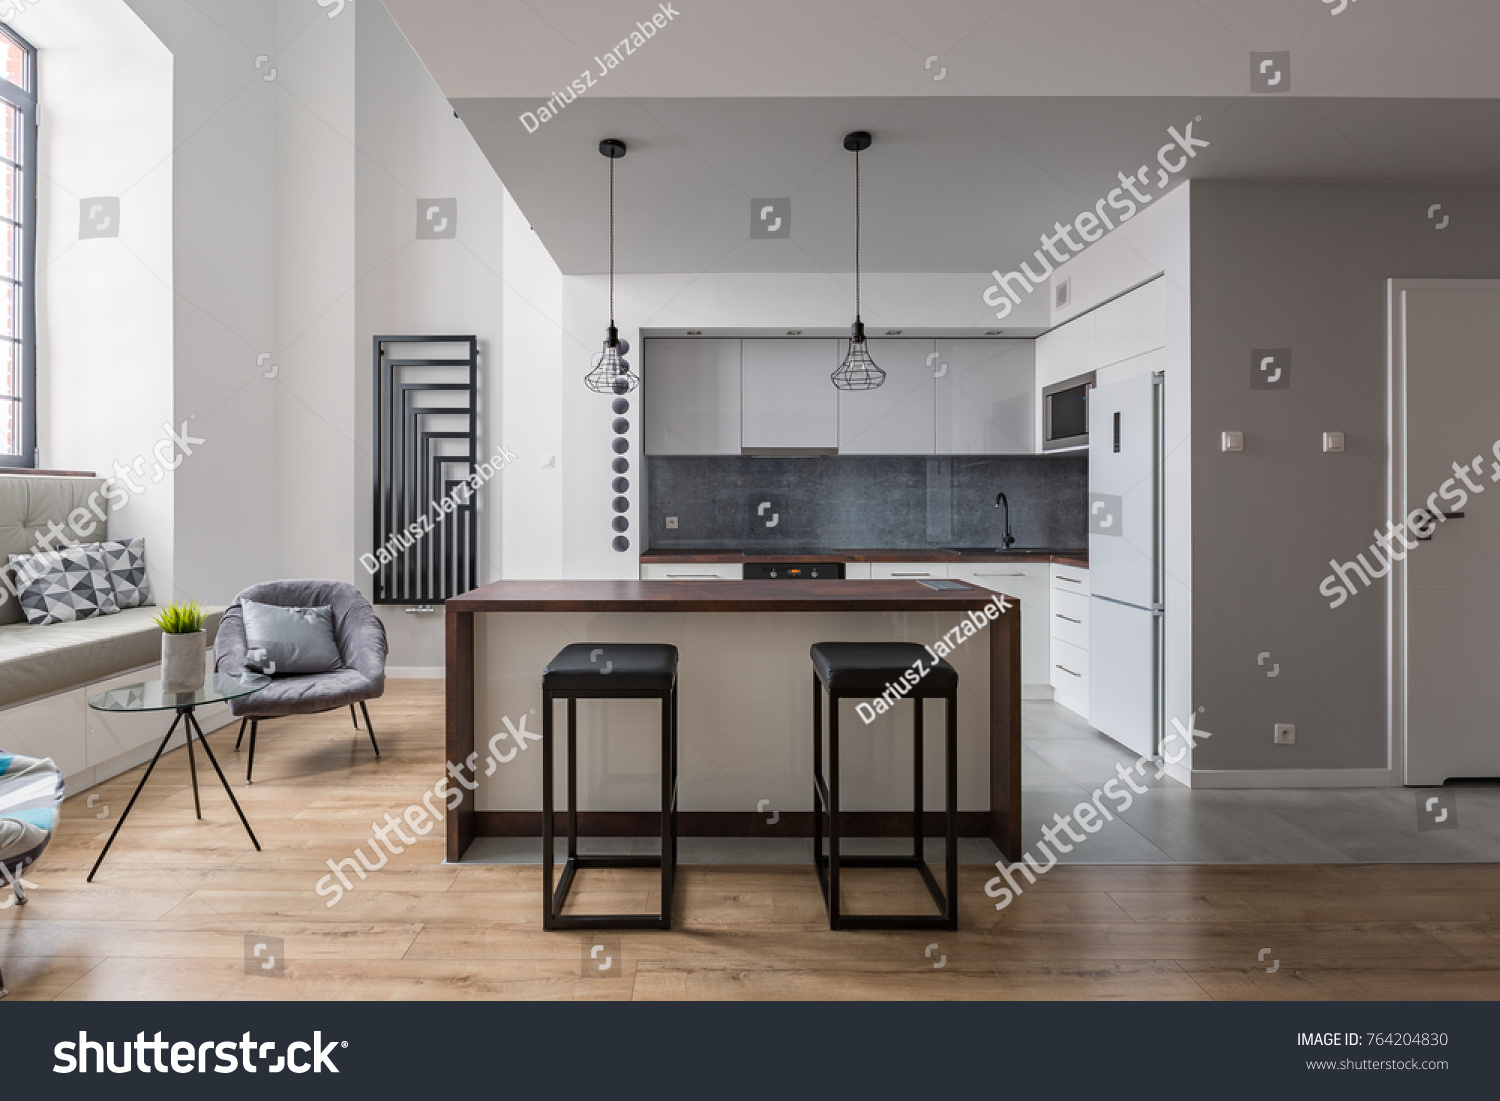 Contemporary interior with kitchen island bar stools and cozy window seat